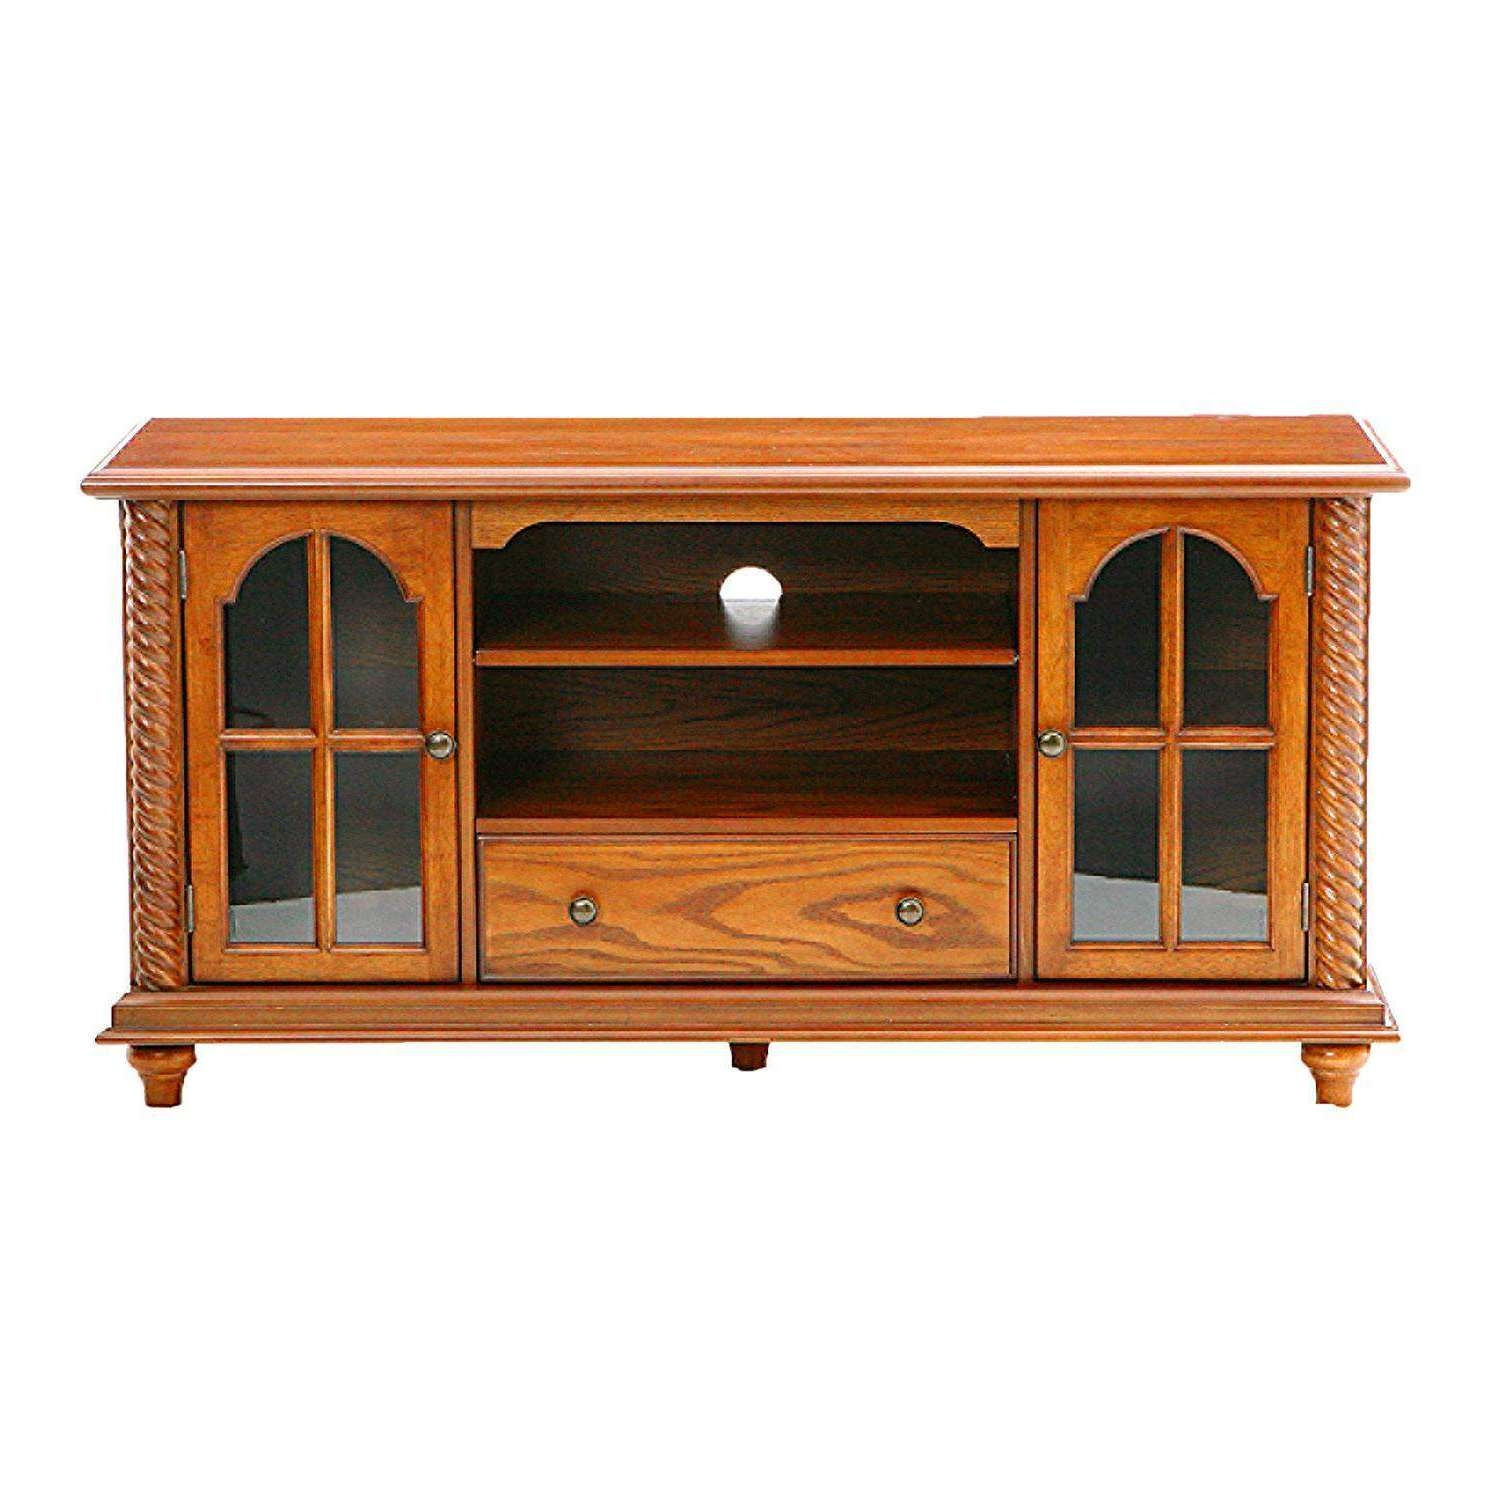 Tillman Antique Style Tv Stand – Next Day Delivery Tillman Antique Inside Antique Style Tv Stands (View 9 of 15)